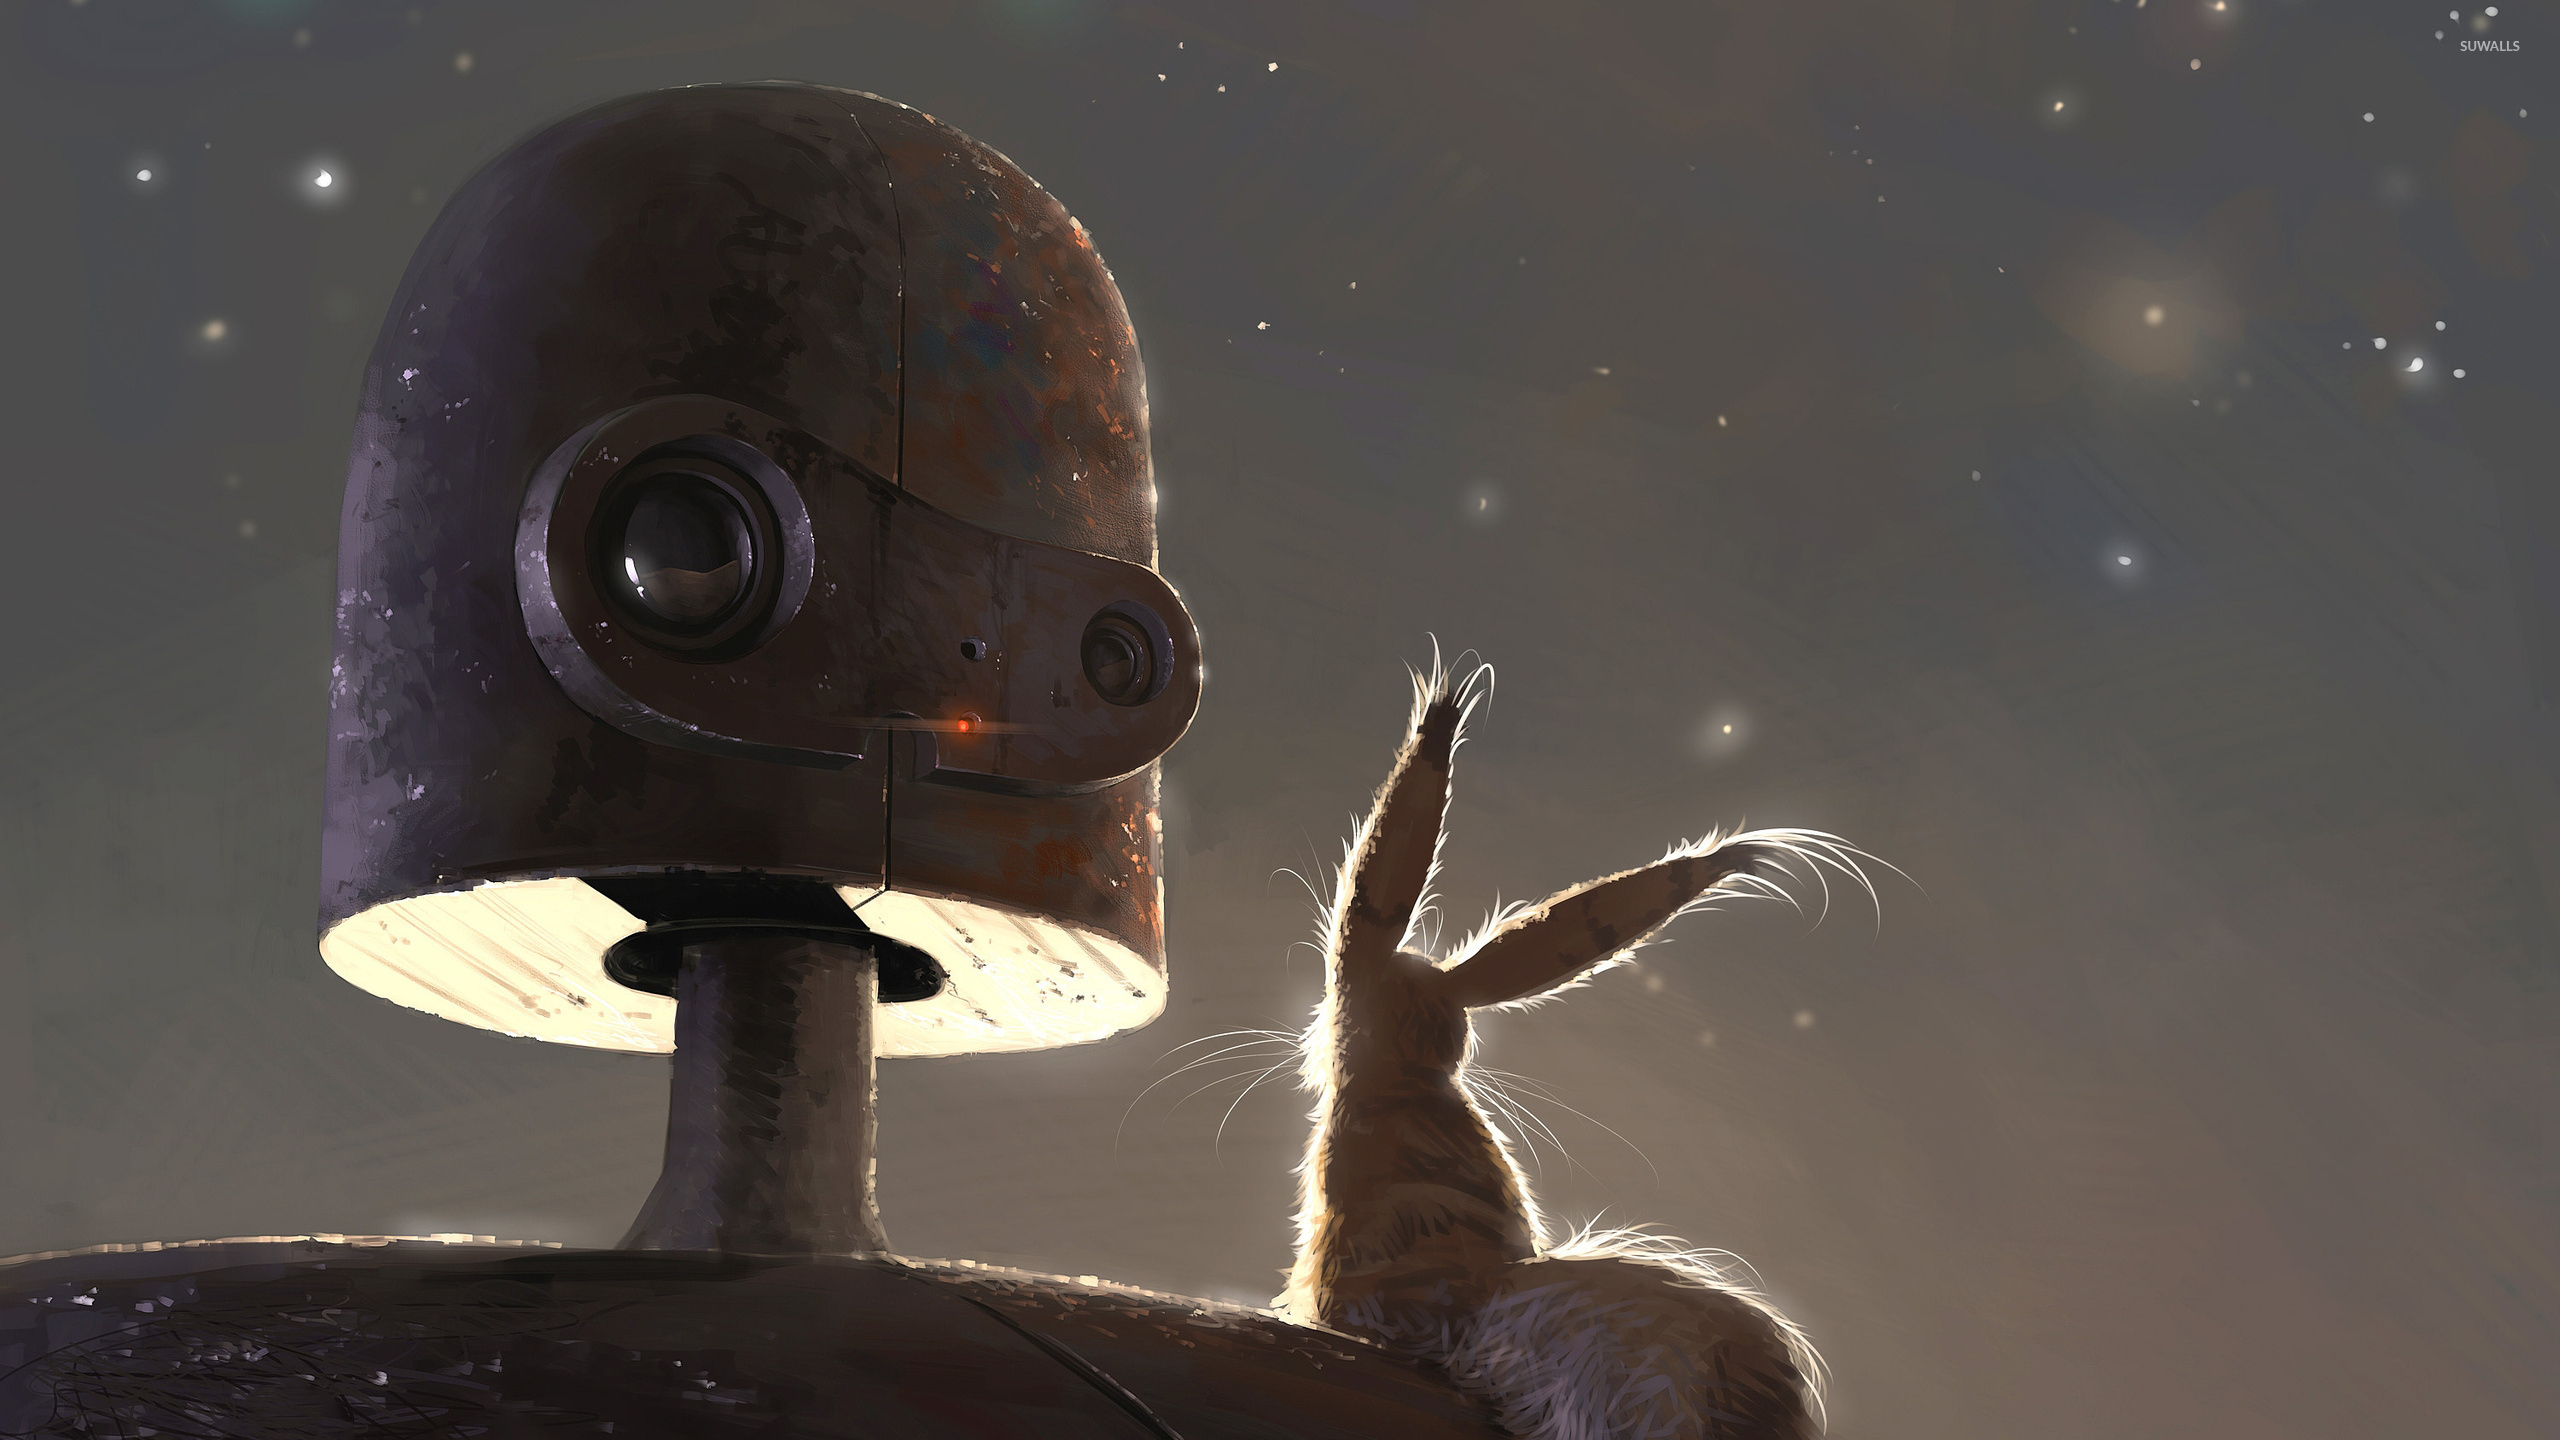 Robot From Castle In The Sky Wallpaper Cartoon Wallpapers 52564